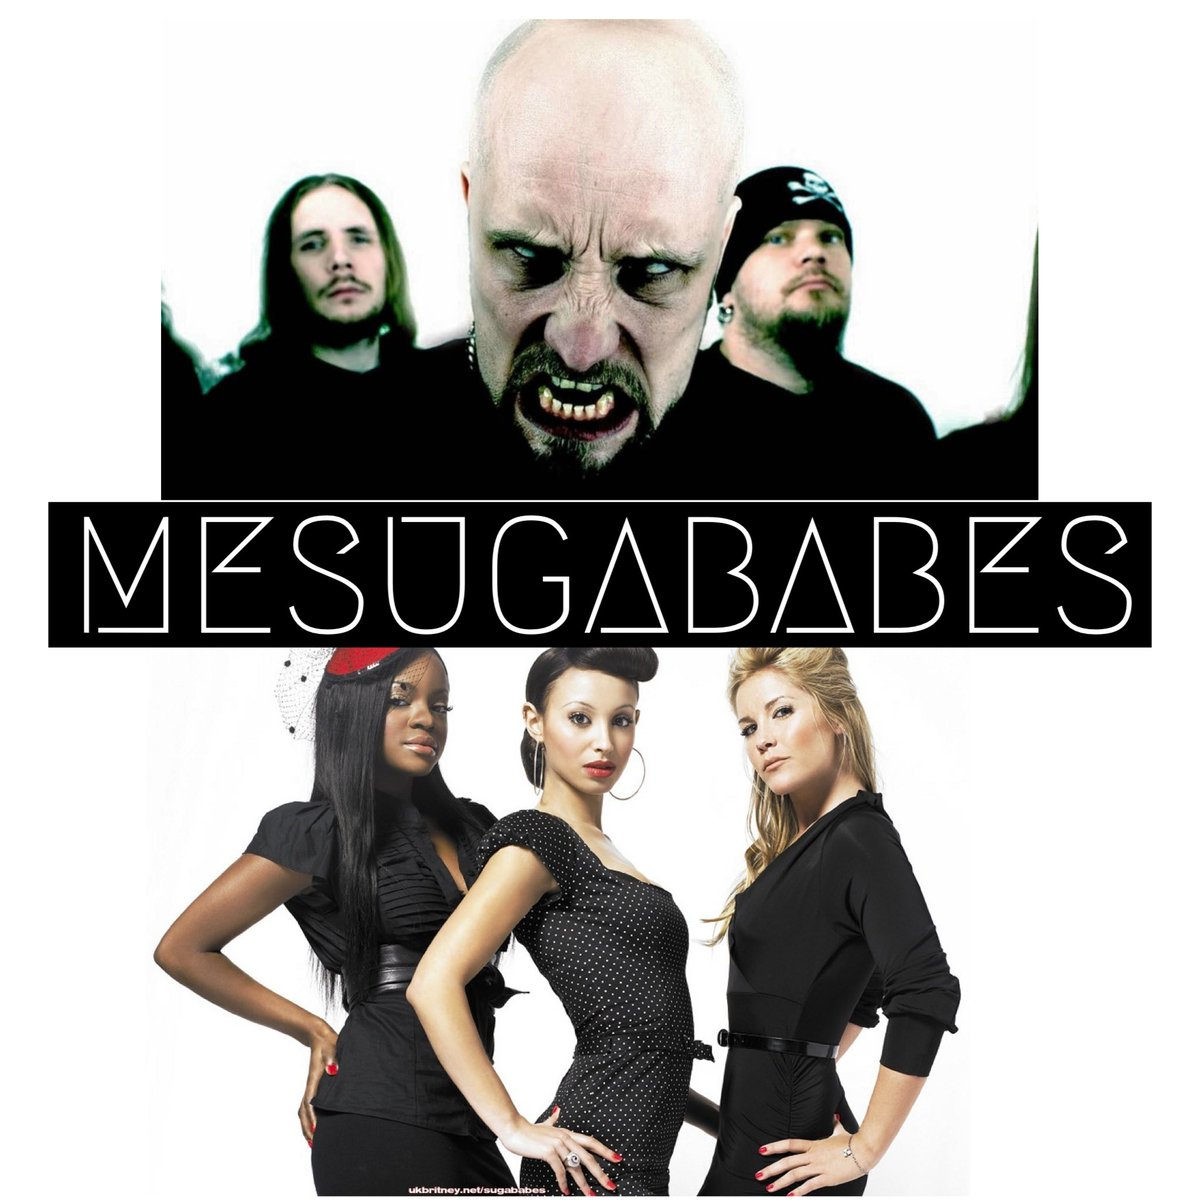 This week's show we finally hear the collaboration that the fans have wanted. The MESUGABABES! #meshuggah #podcast #sugababes #metal #rock #numetal #kerrang https://t.co/bqR8Rl7Ebu